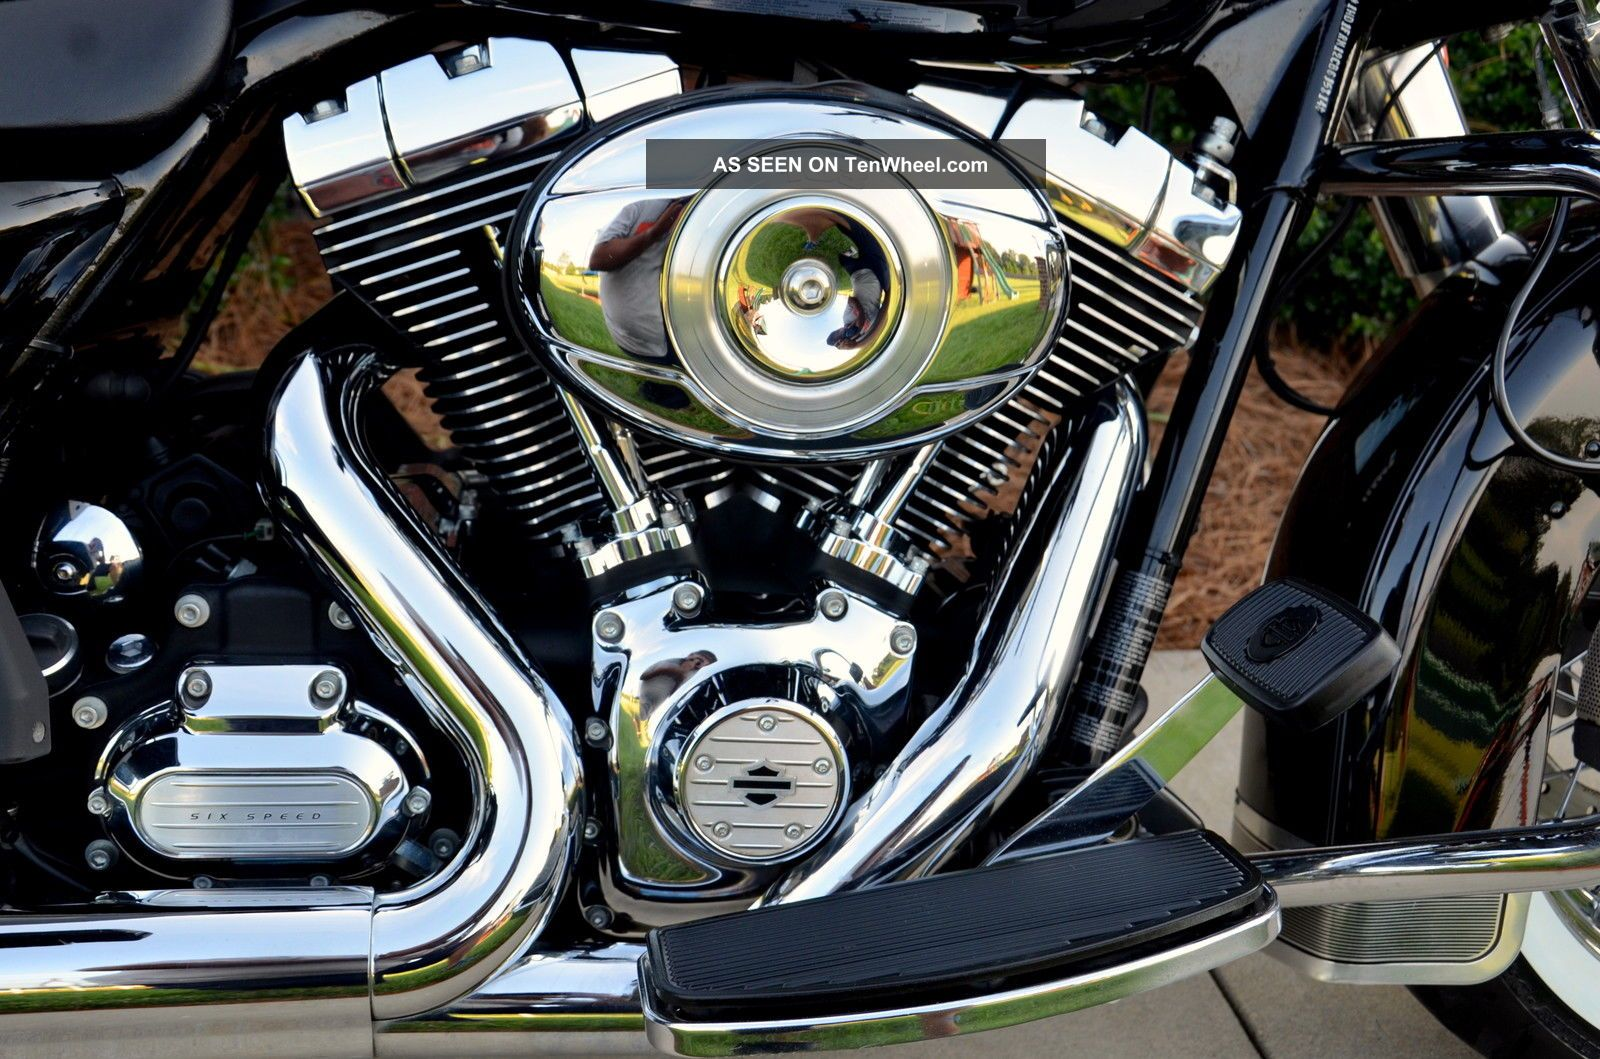 hight resolution of harley davidson 103 engine parts diagram diagram auto harley davidson 103 vs 107 harley davidson engine sizes cc